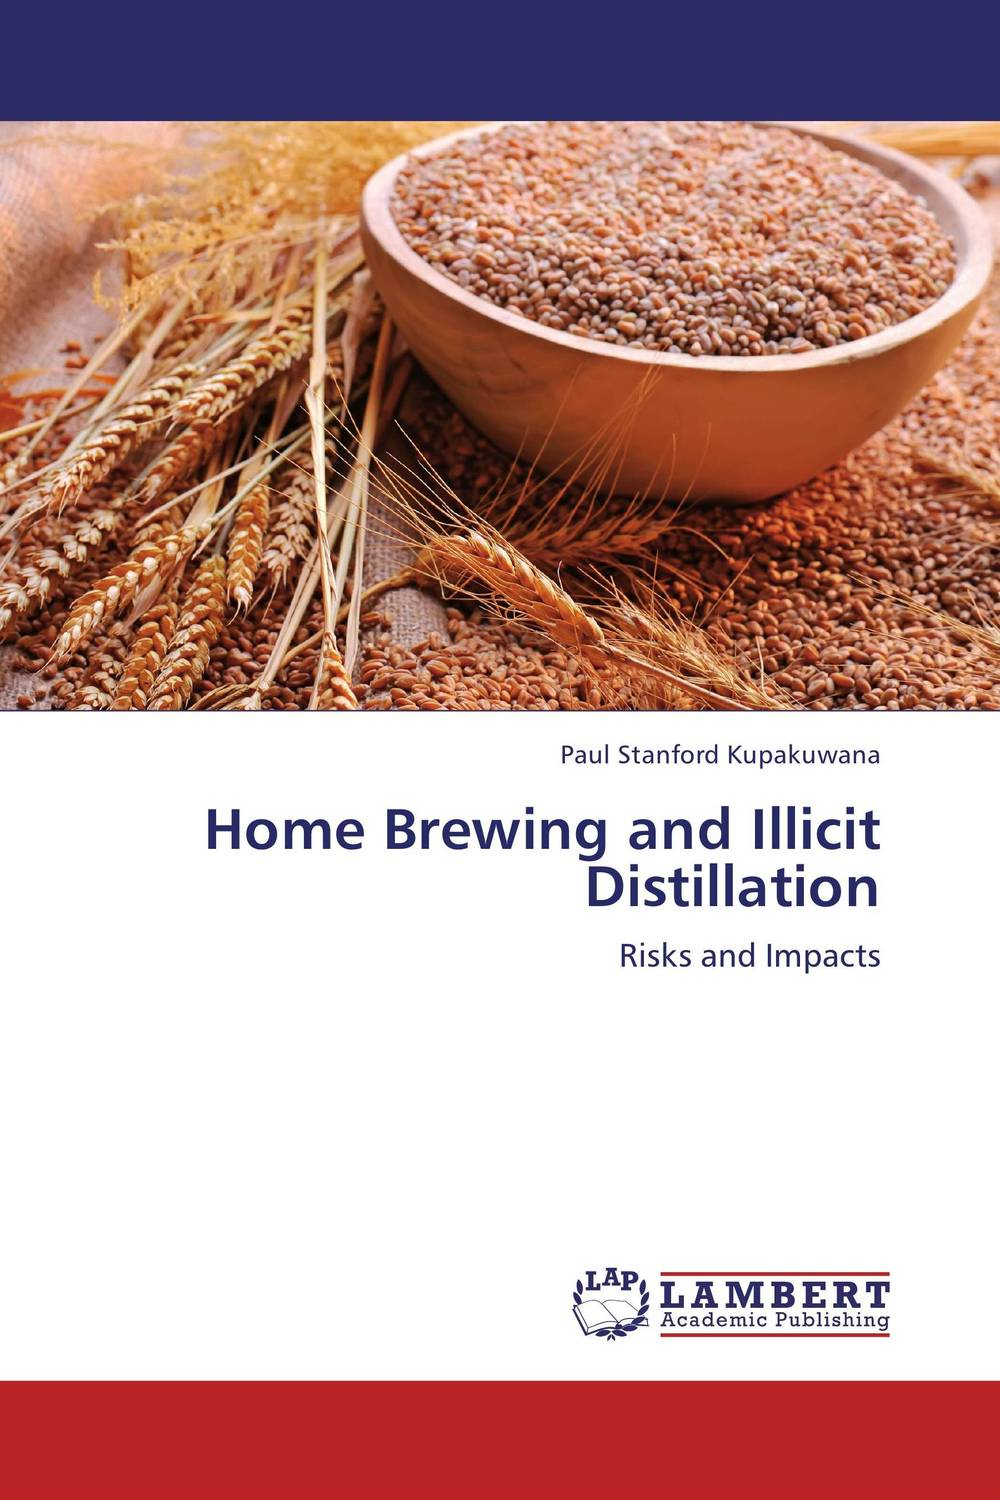 Home Brewing and Illicit Distillation street food vendors